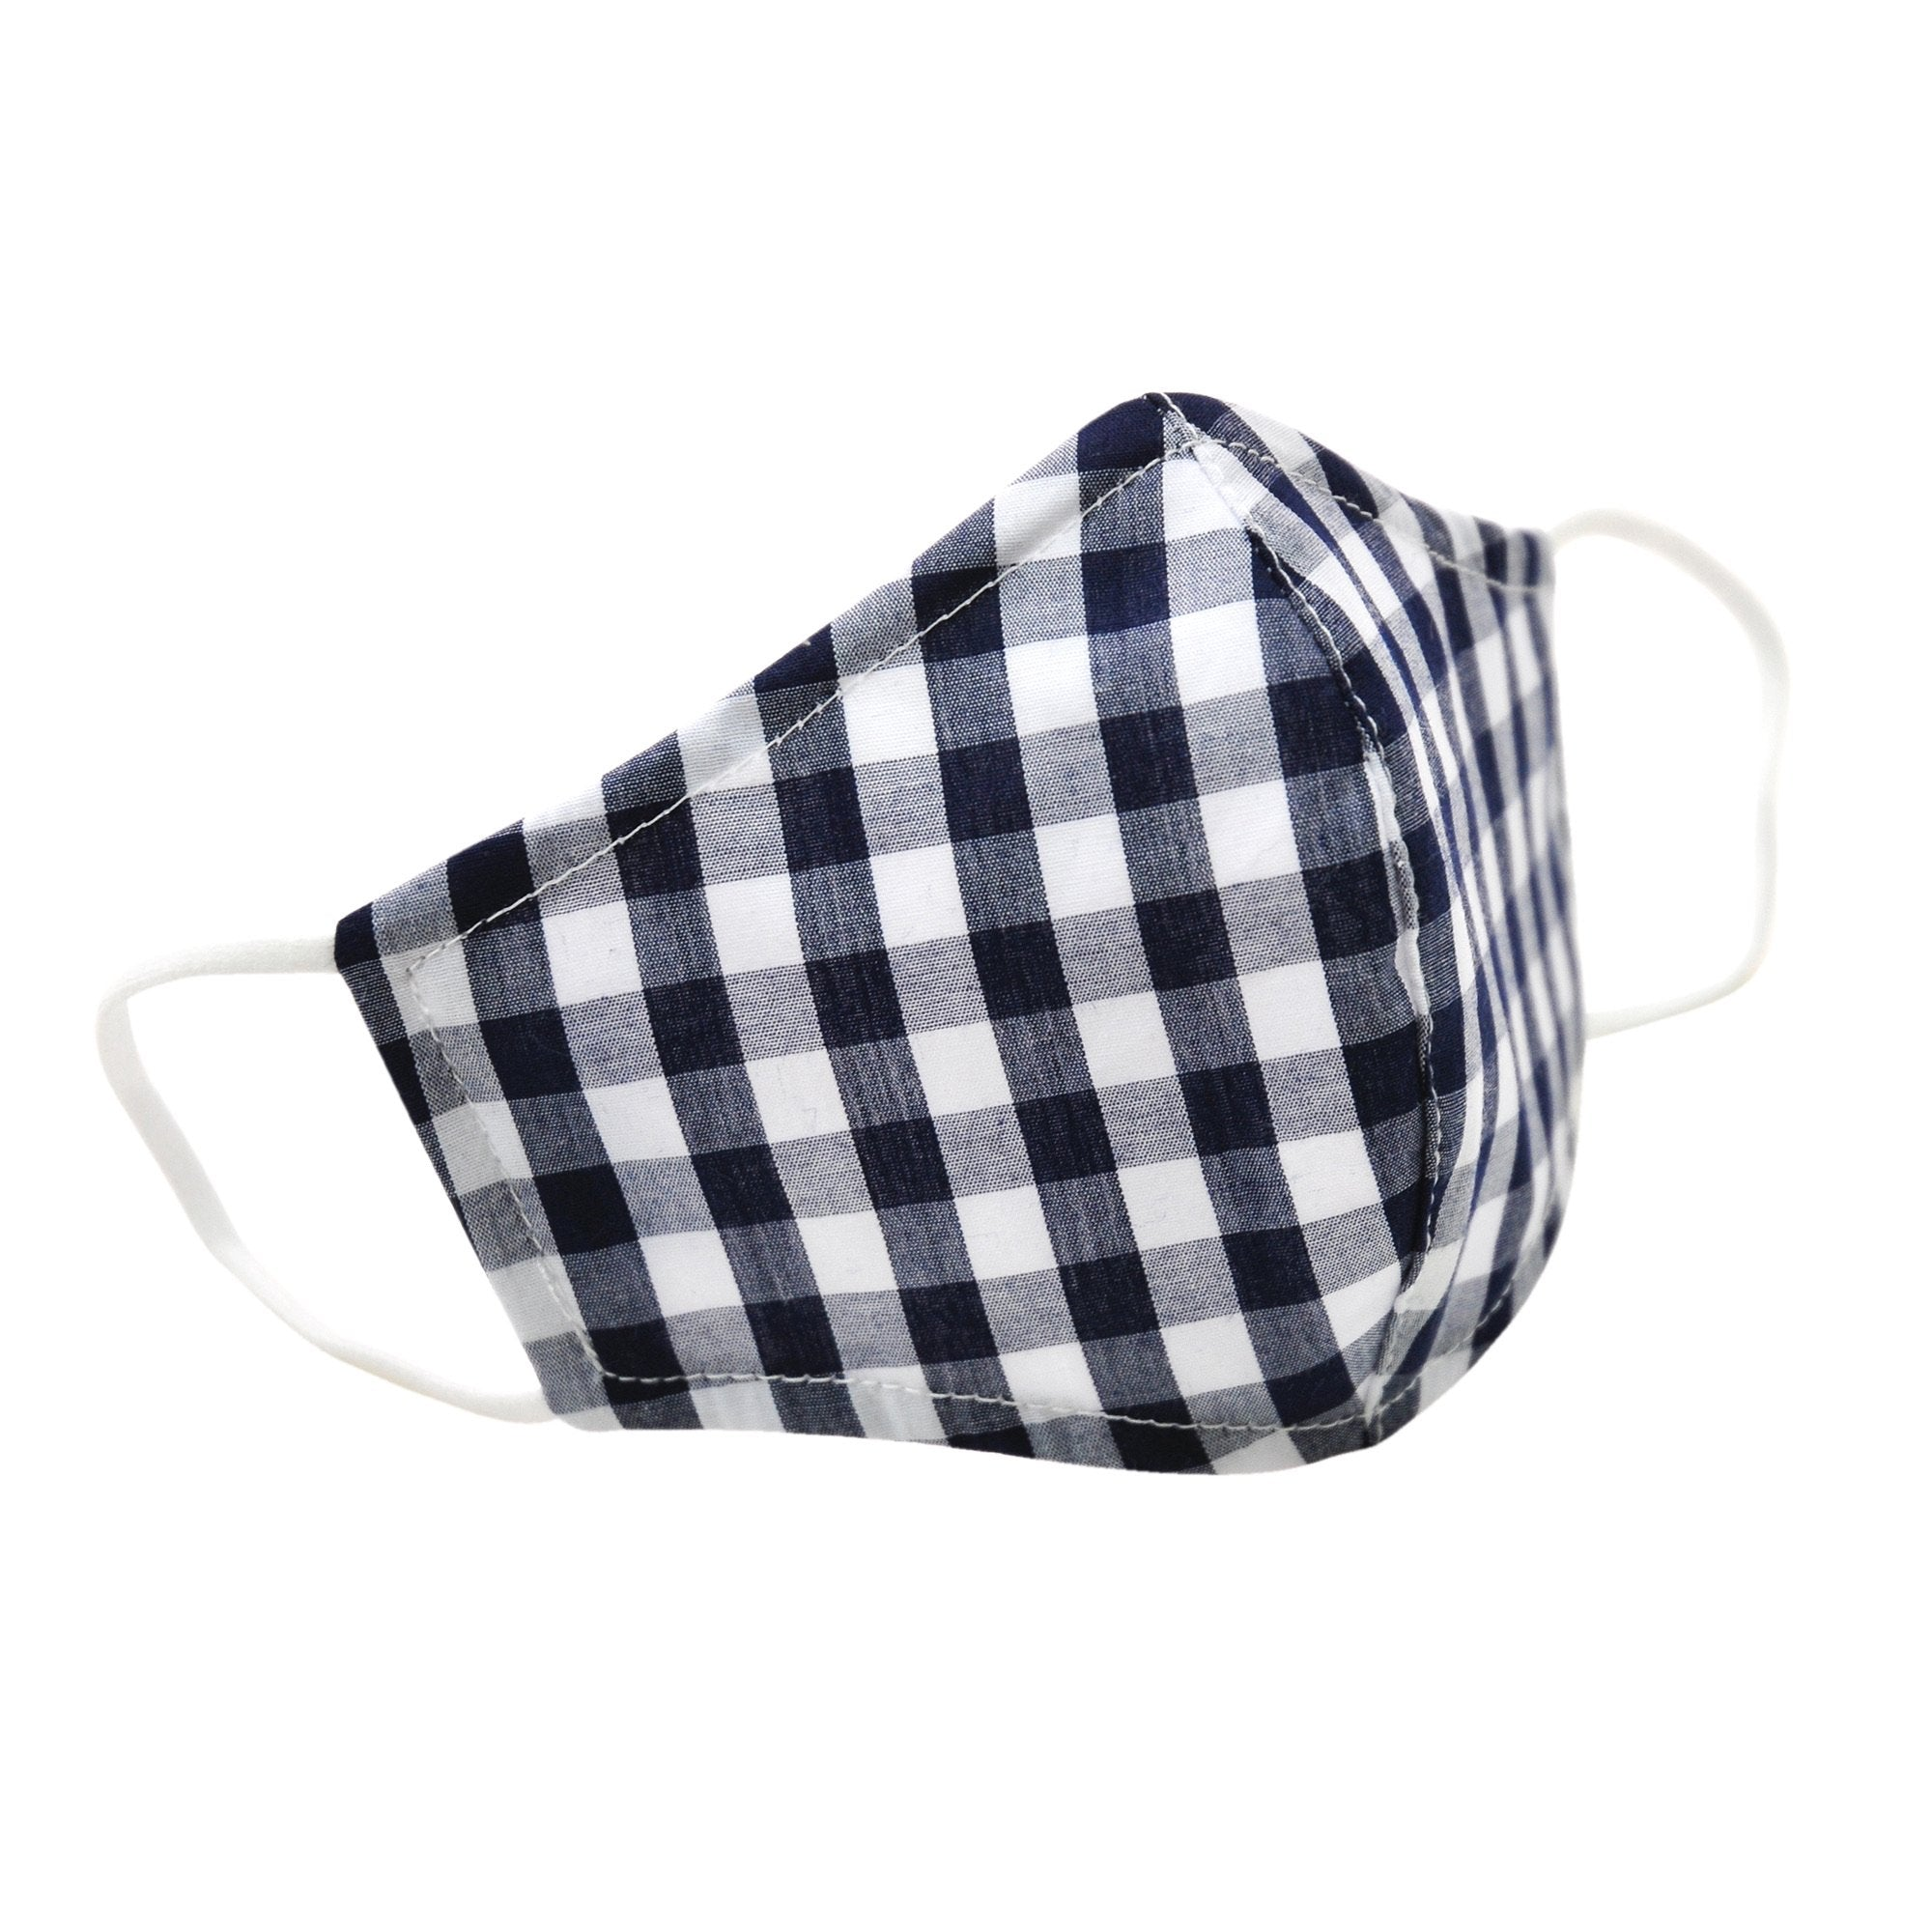 FACE MASK IN NAVY GINGHAM